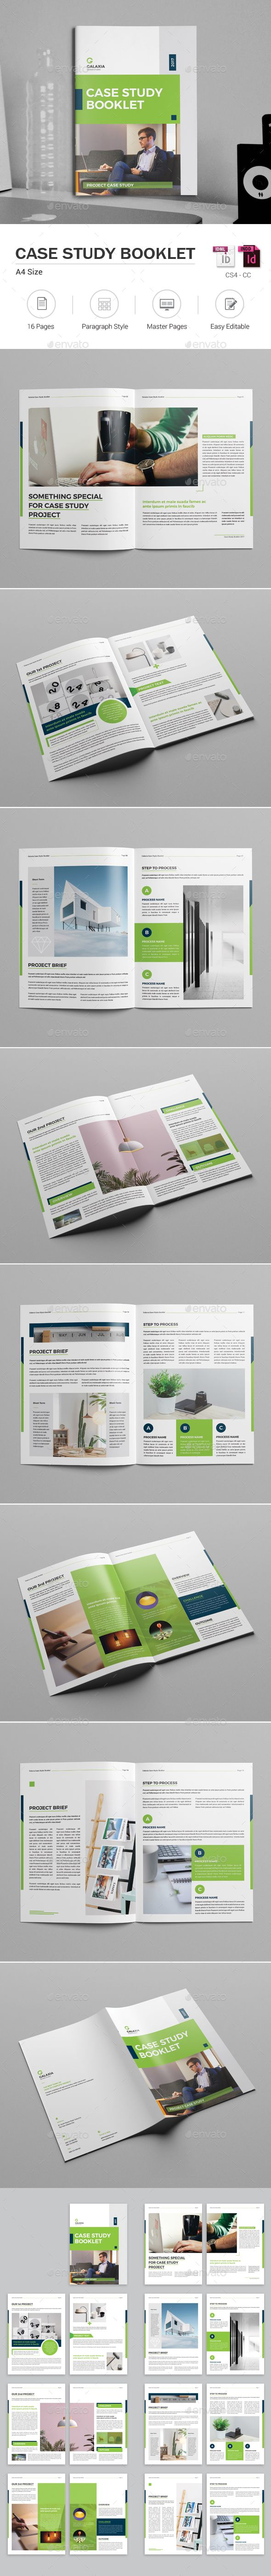 75 best Case Study Templates images on Pinterest | Page layout, Case ...